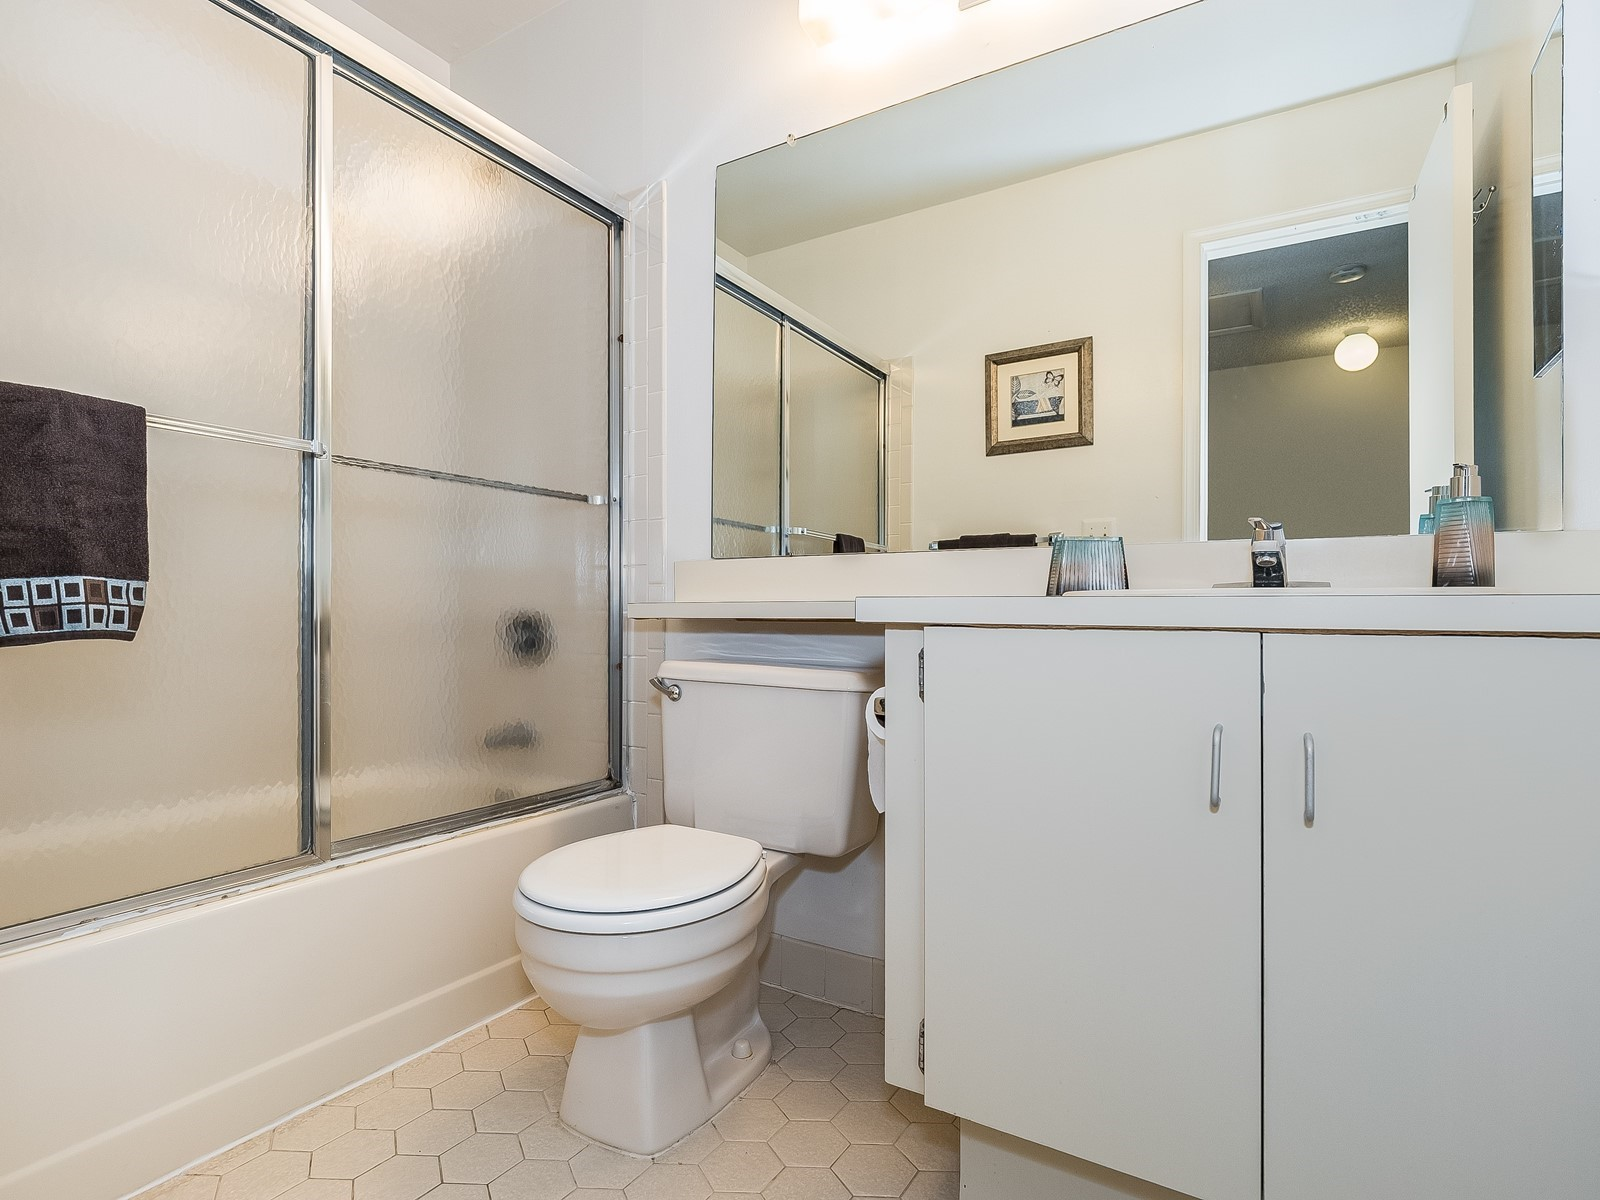 Piscataway 147 Furnished housing bathroom with toilet, sink and tub/shower